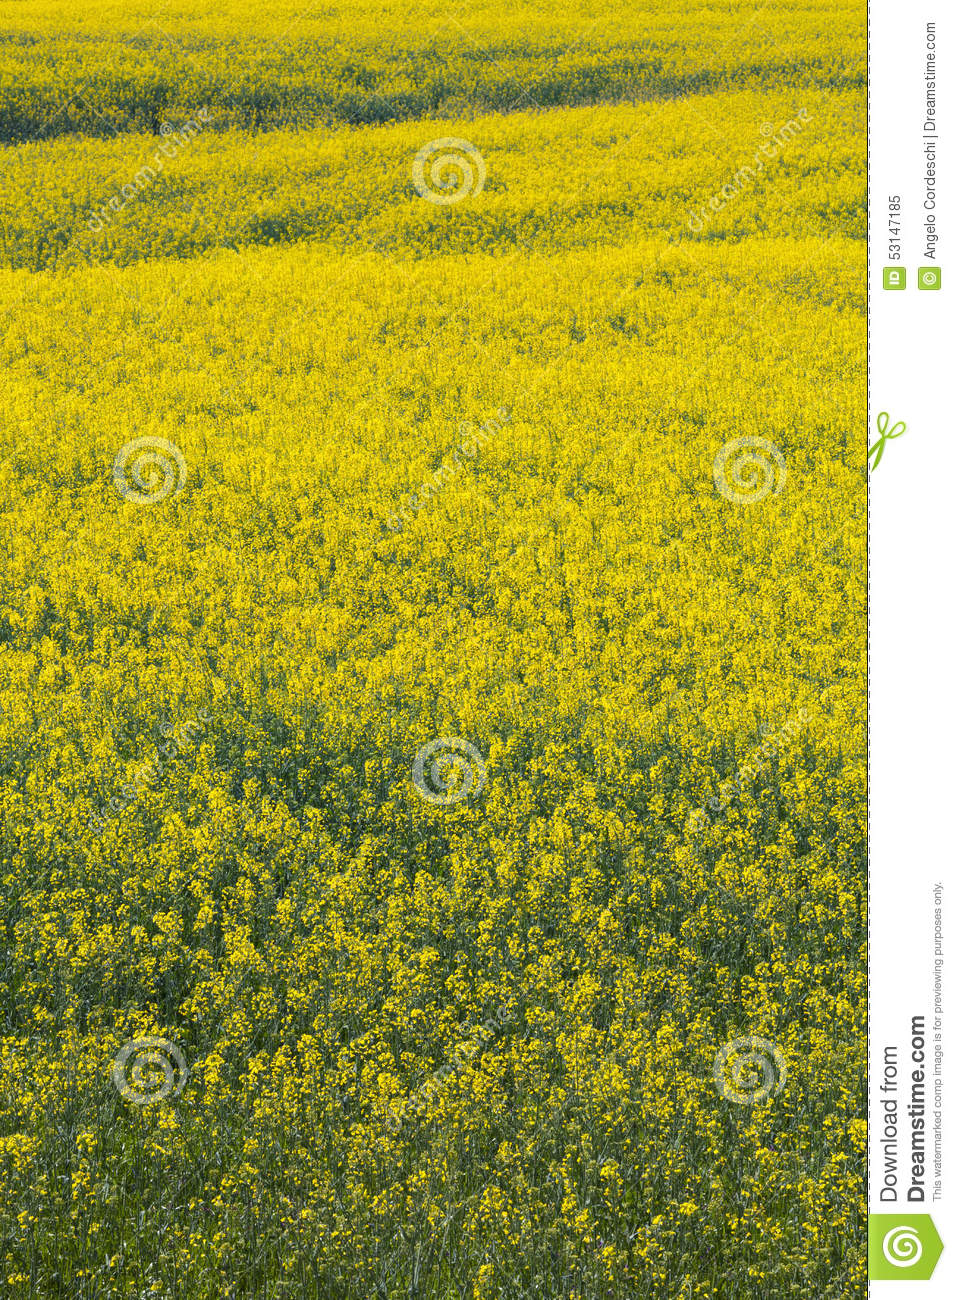 Fully flowered field, yellow flowers. Full spring natural background